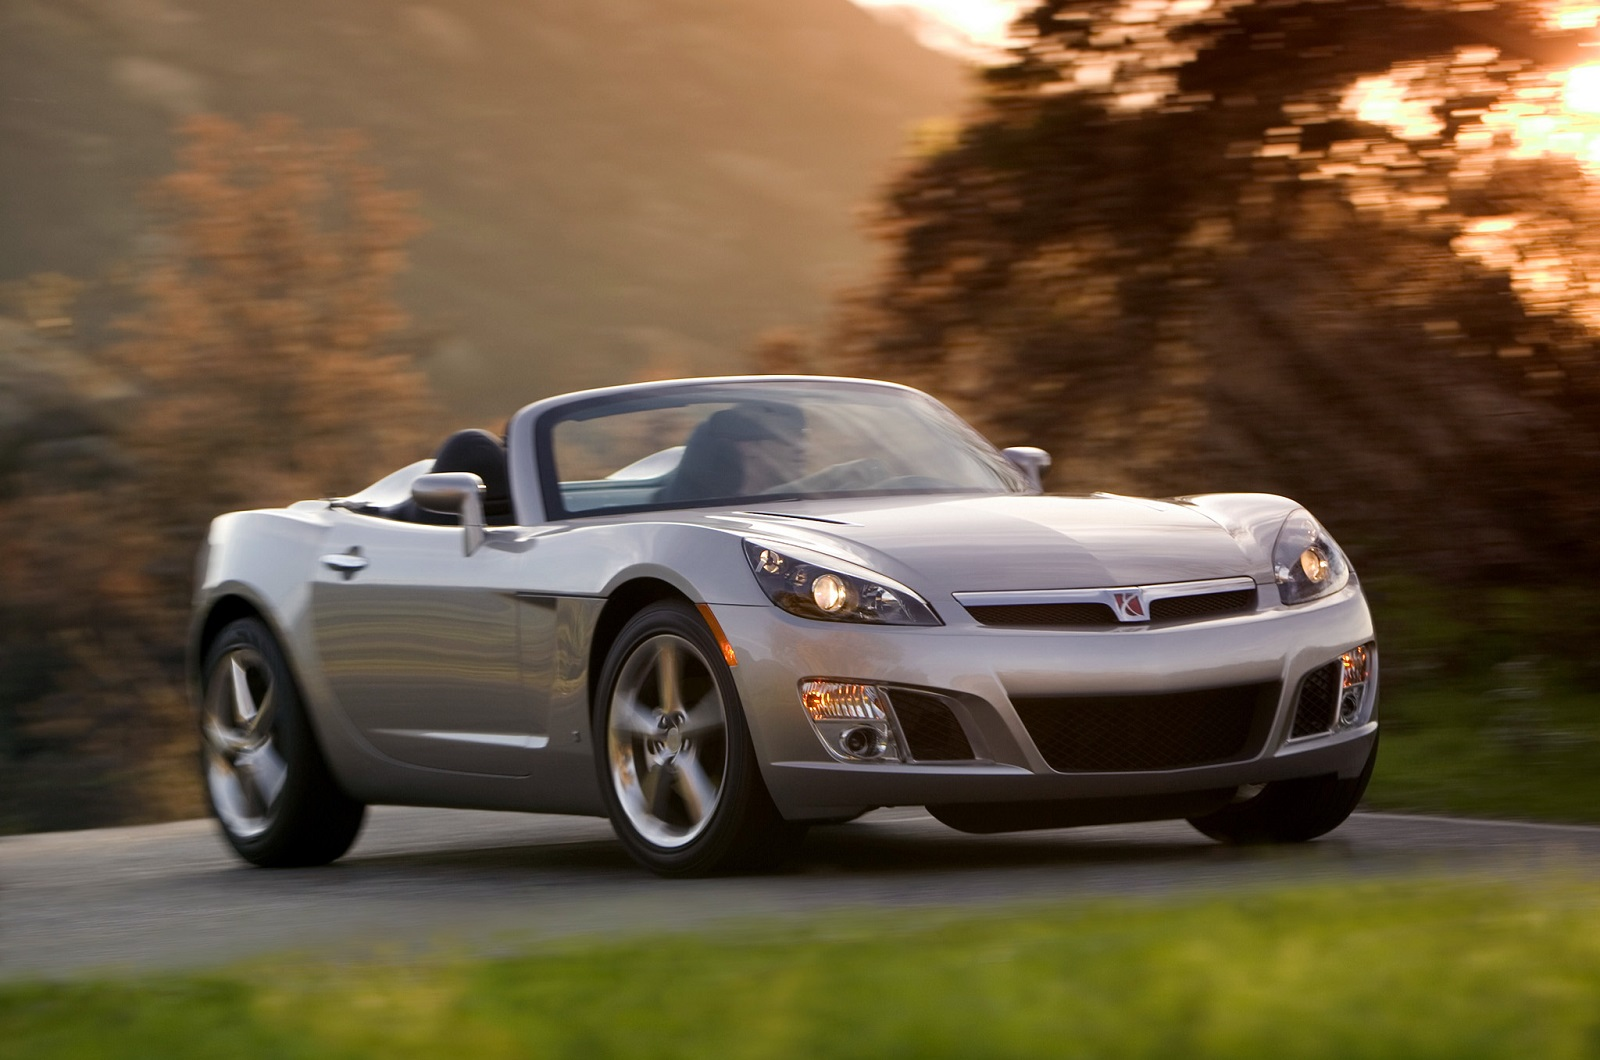 Broadly speaking, automakers expect a regular-production car to remain on the market for at least five years.